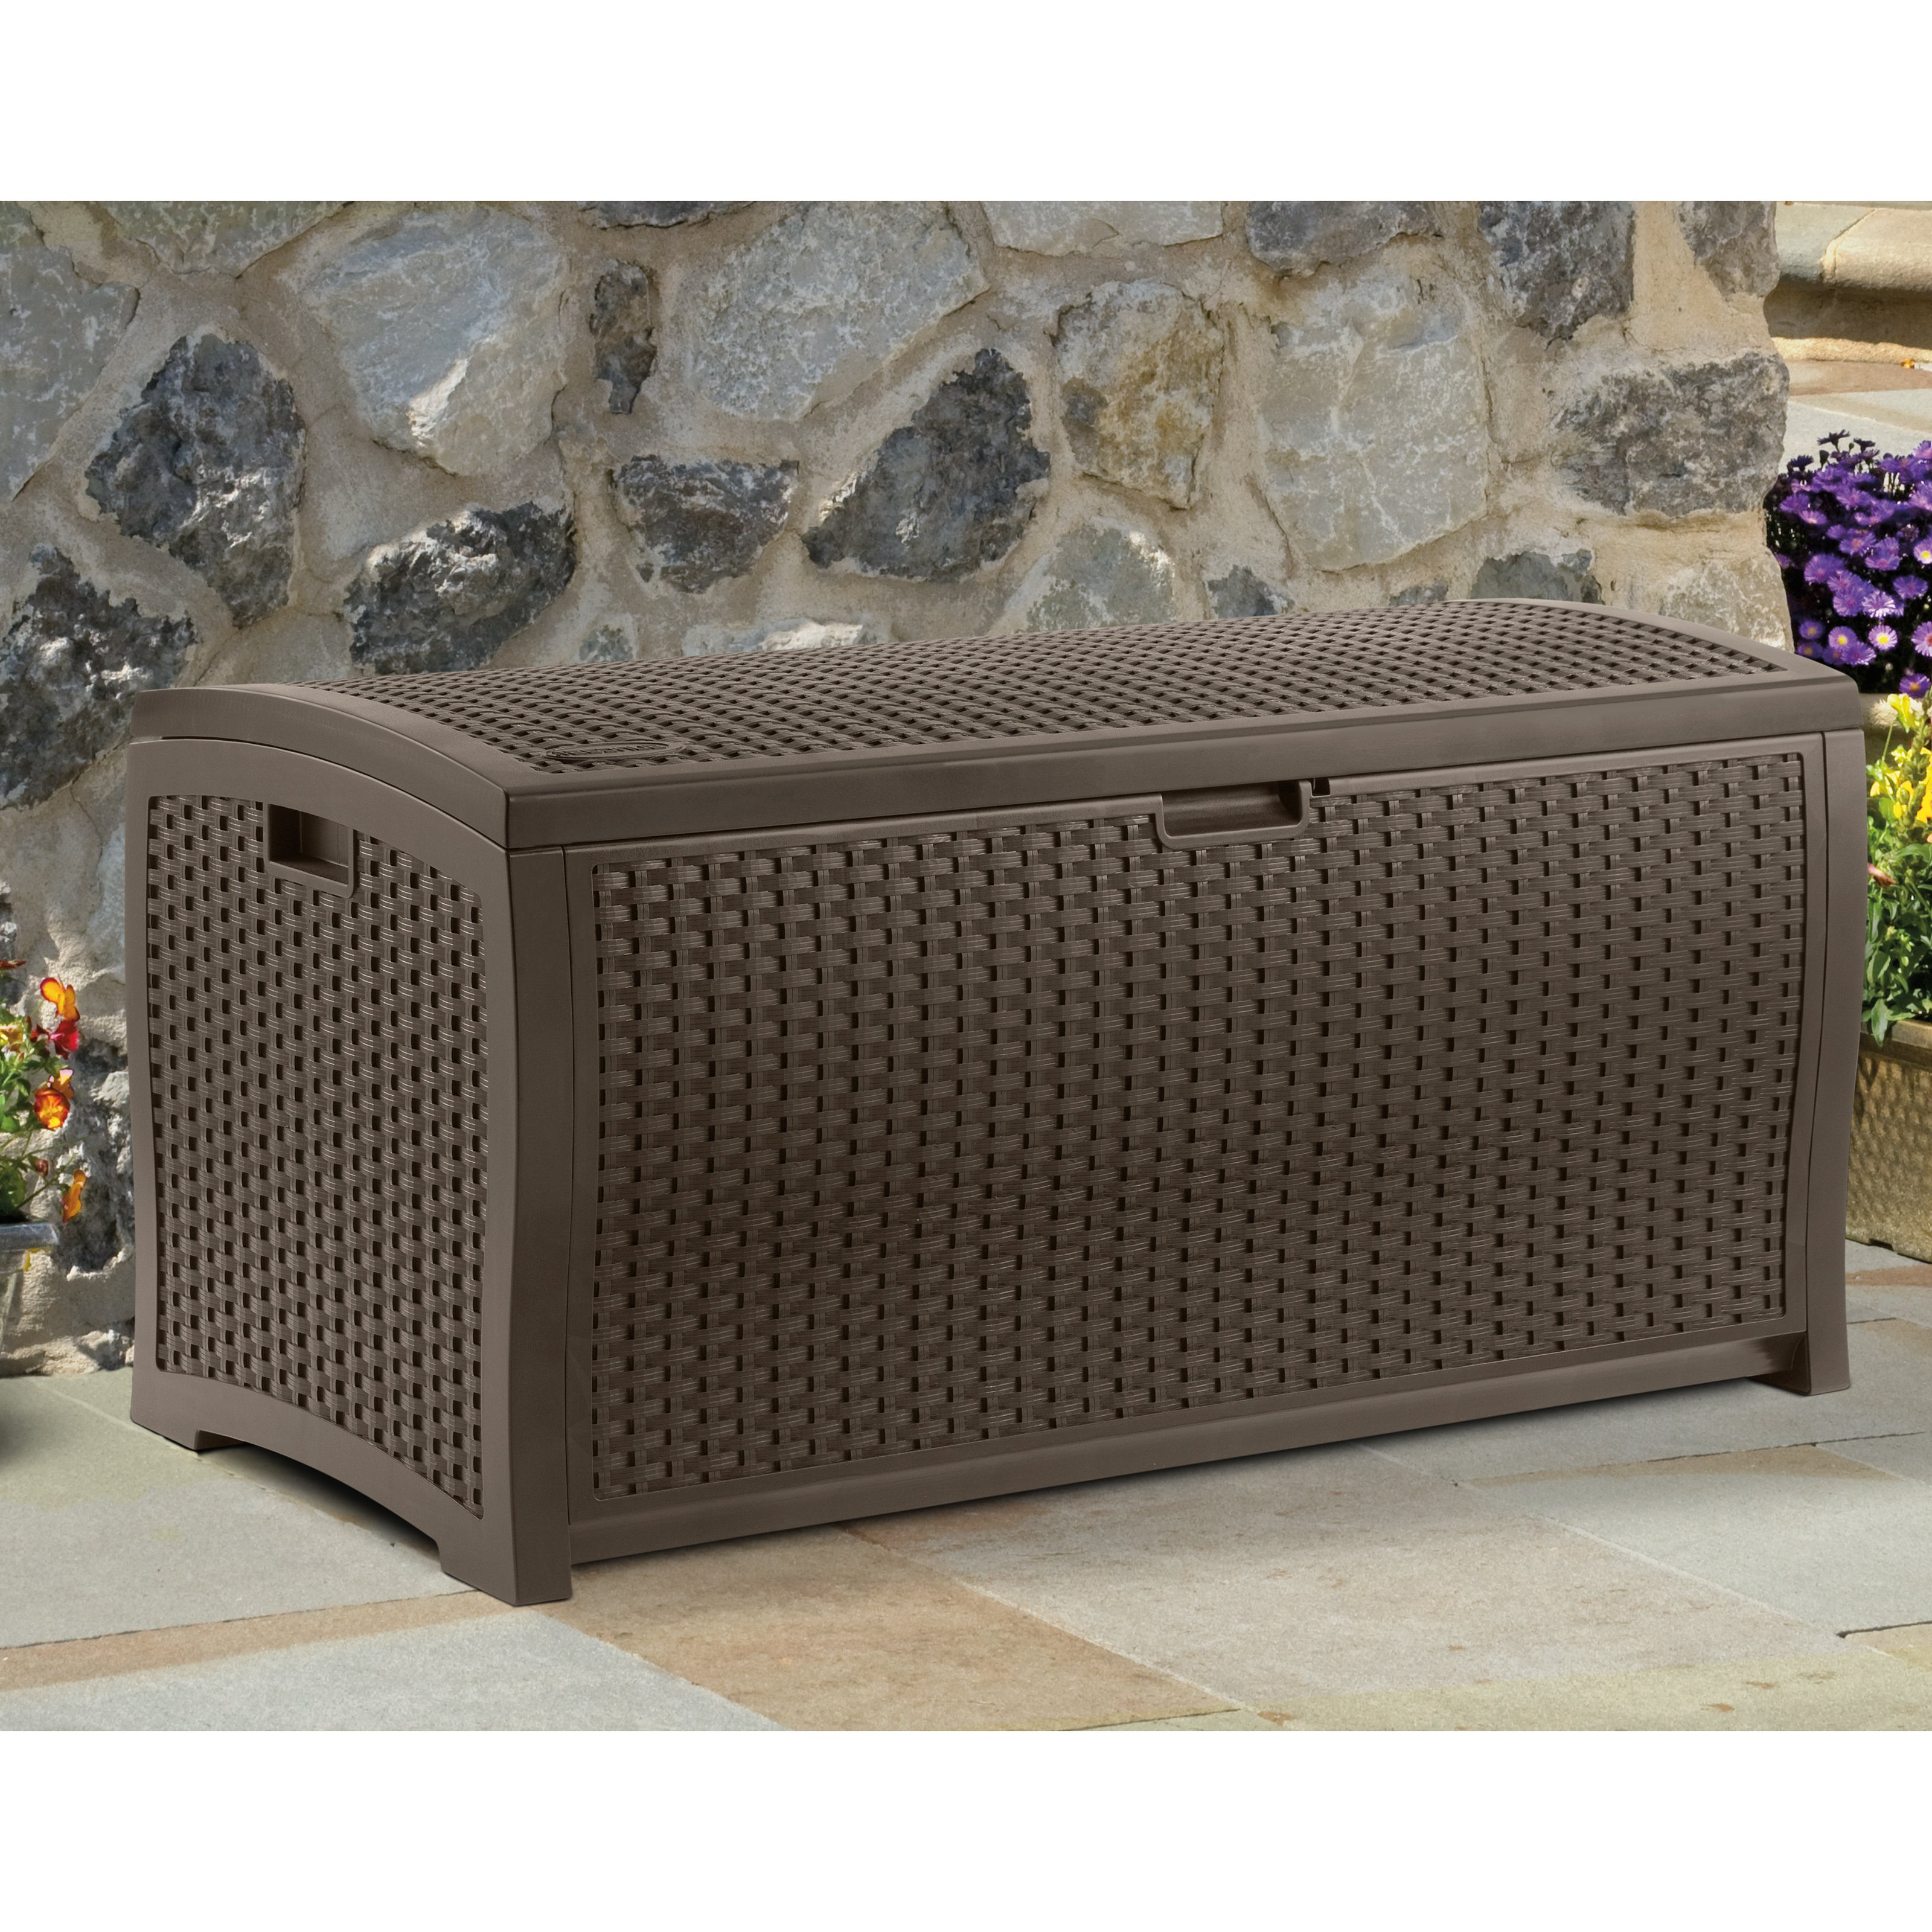 gh with pads cushion brighton amazing storage bench benchoutdoor box outside patio belham living grand garden pleasing cosmopolitan and seat hayneedle outdoor deck